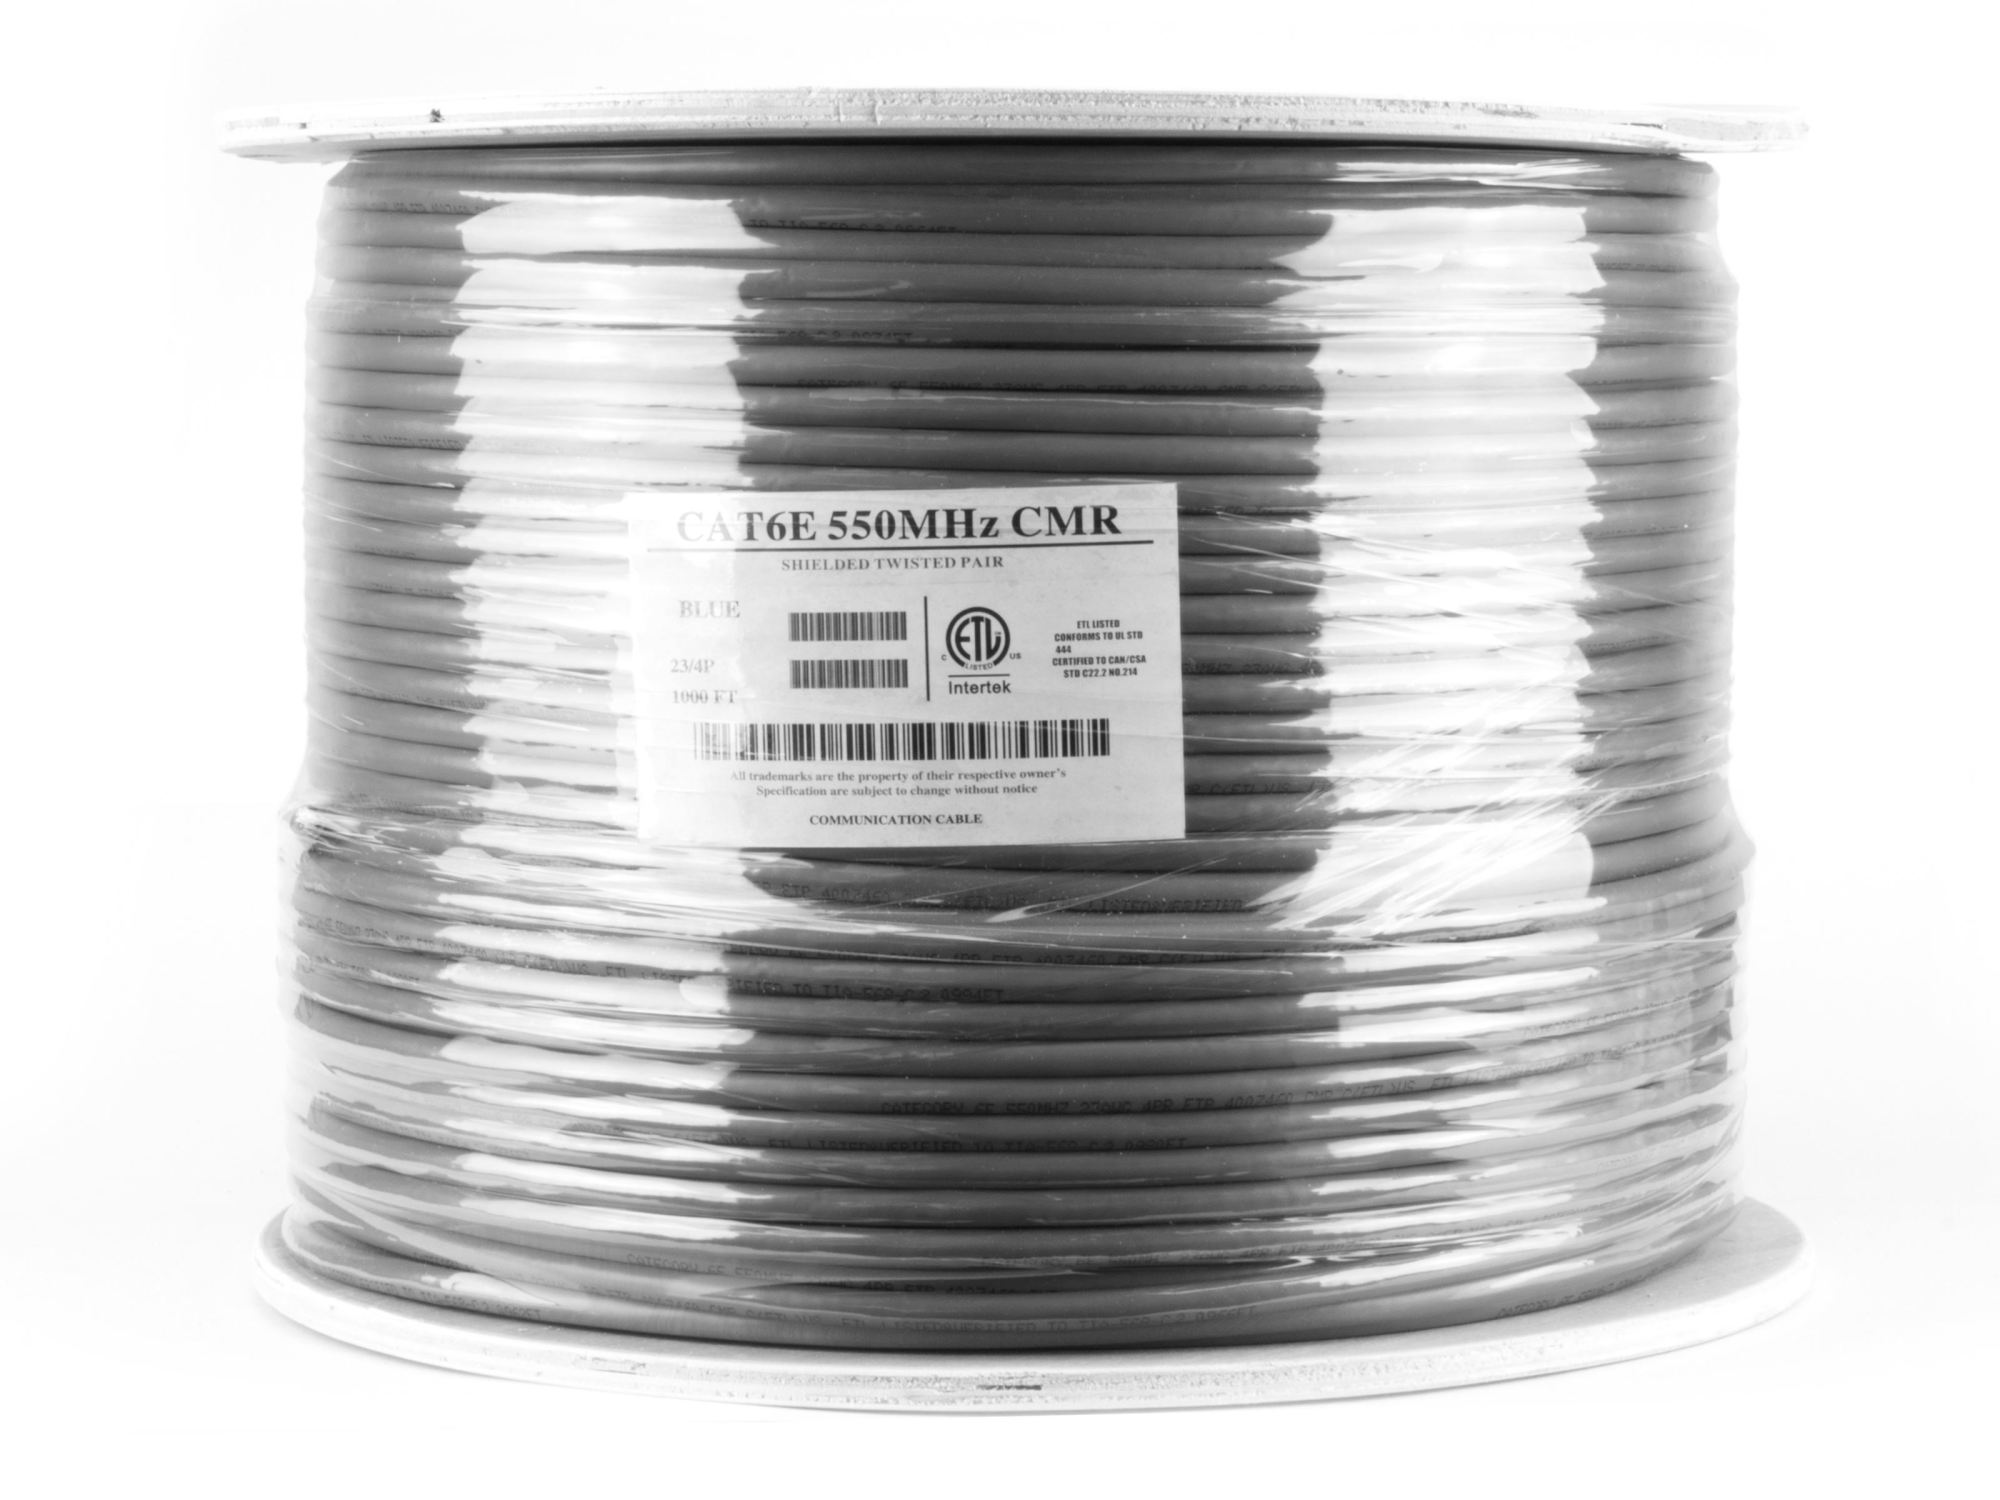 hight resolution of  picture of cat6 shielded network cable solid stp gray riser cmr